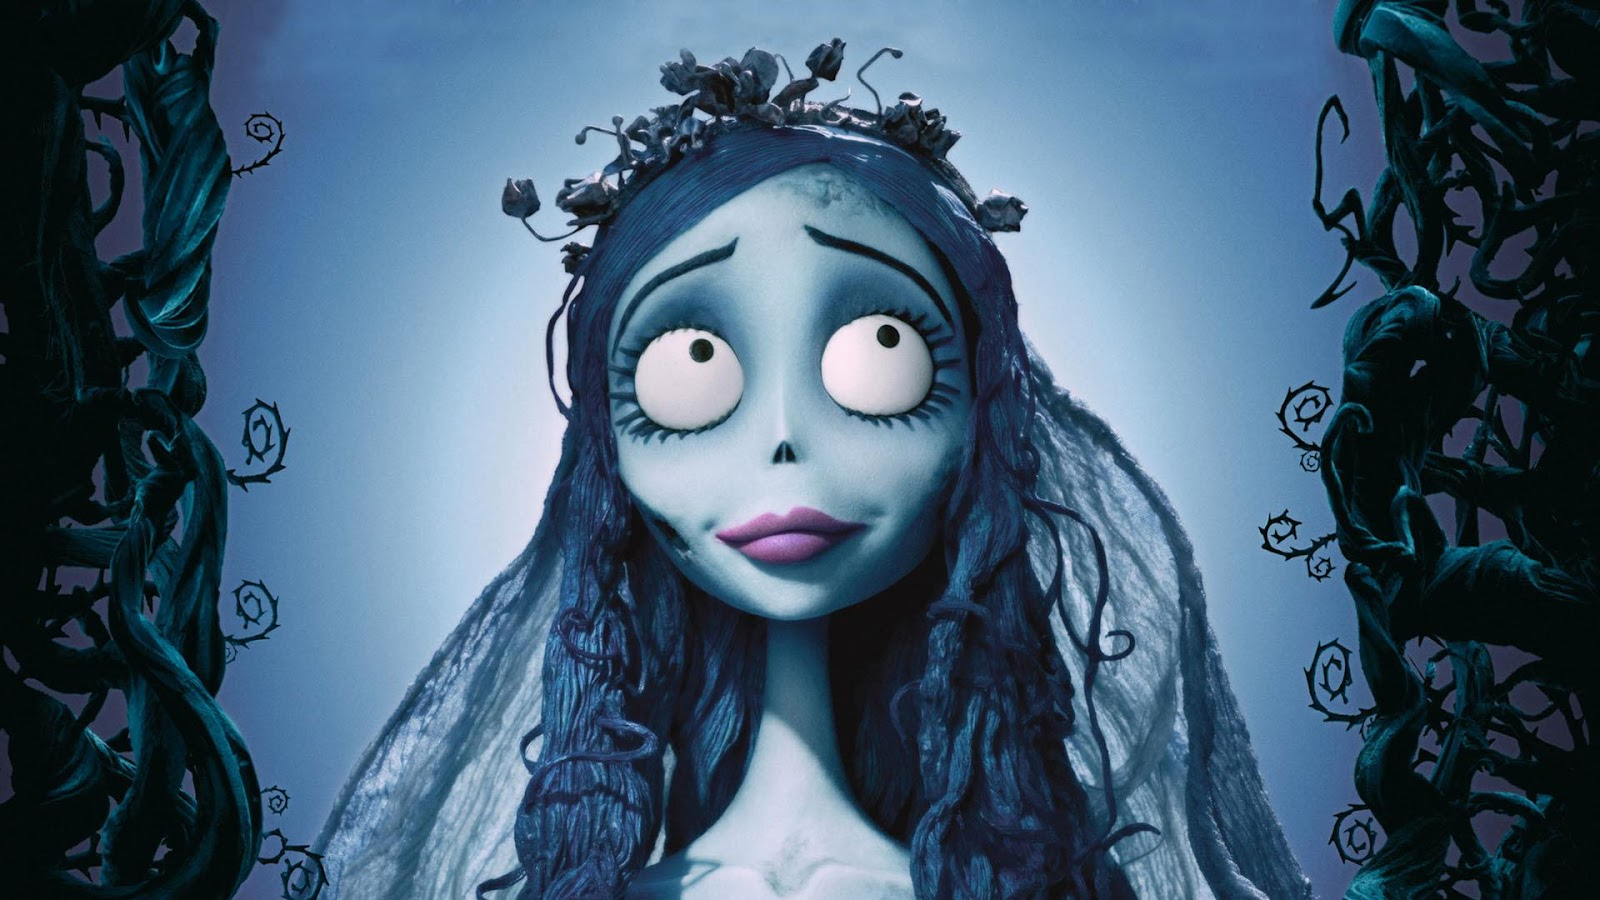 The corpse bride costume apps directories